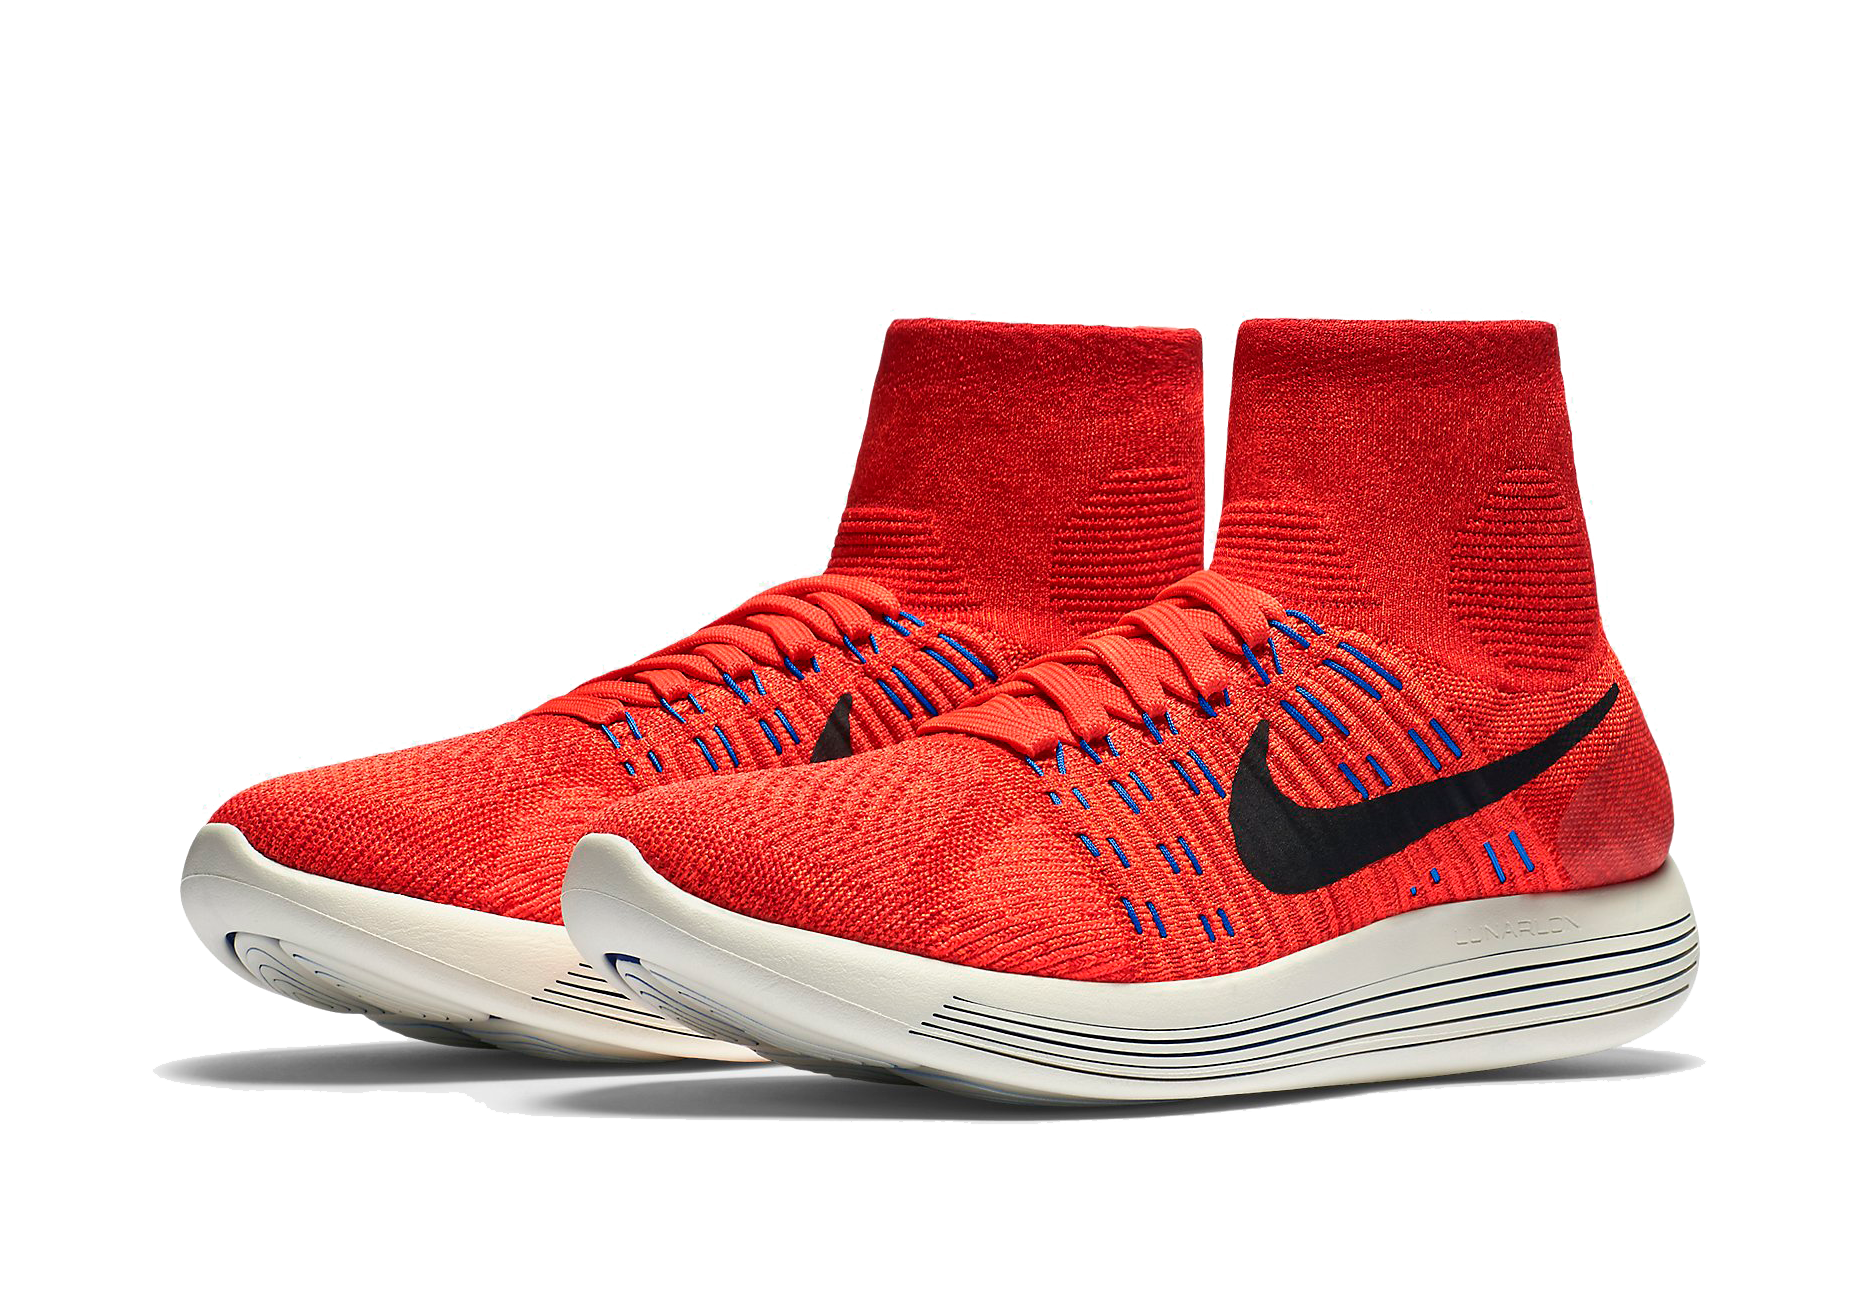 premium selection 71108 aef9c Nike LUNAREPIC FLYKNIT Review